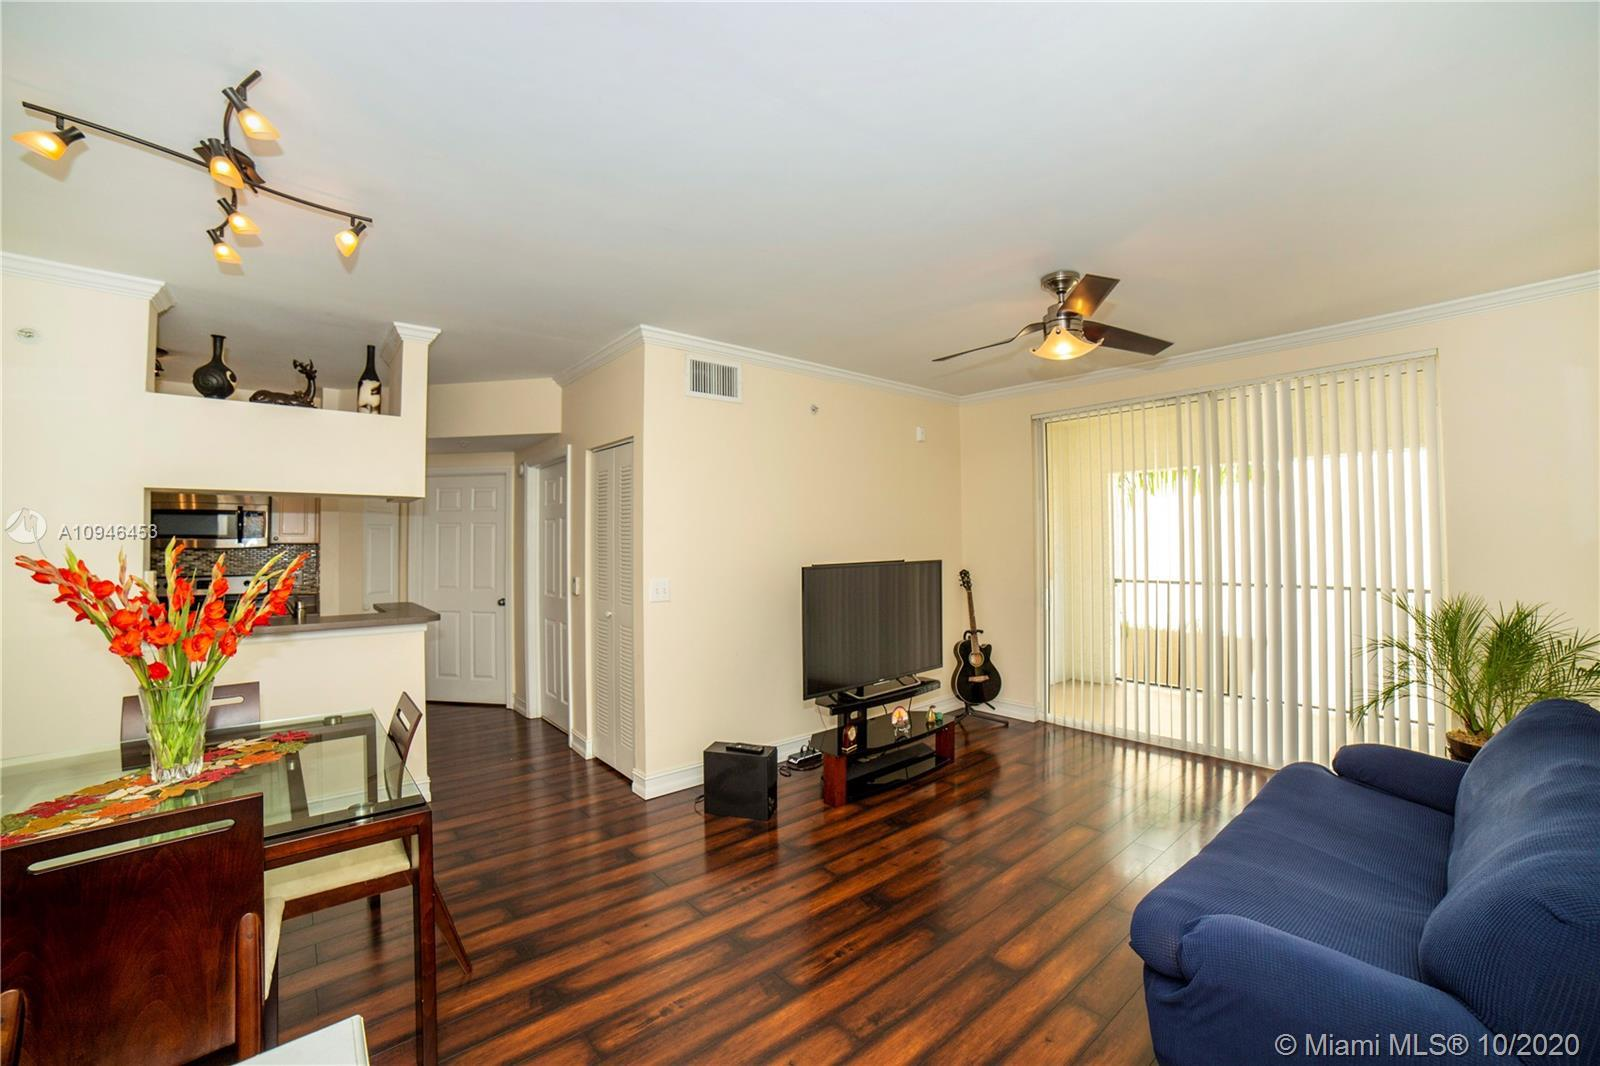 Beautiful and well located one bedroom/one bathroom Andalusia model unit with an amazing garden view